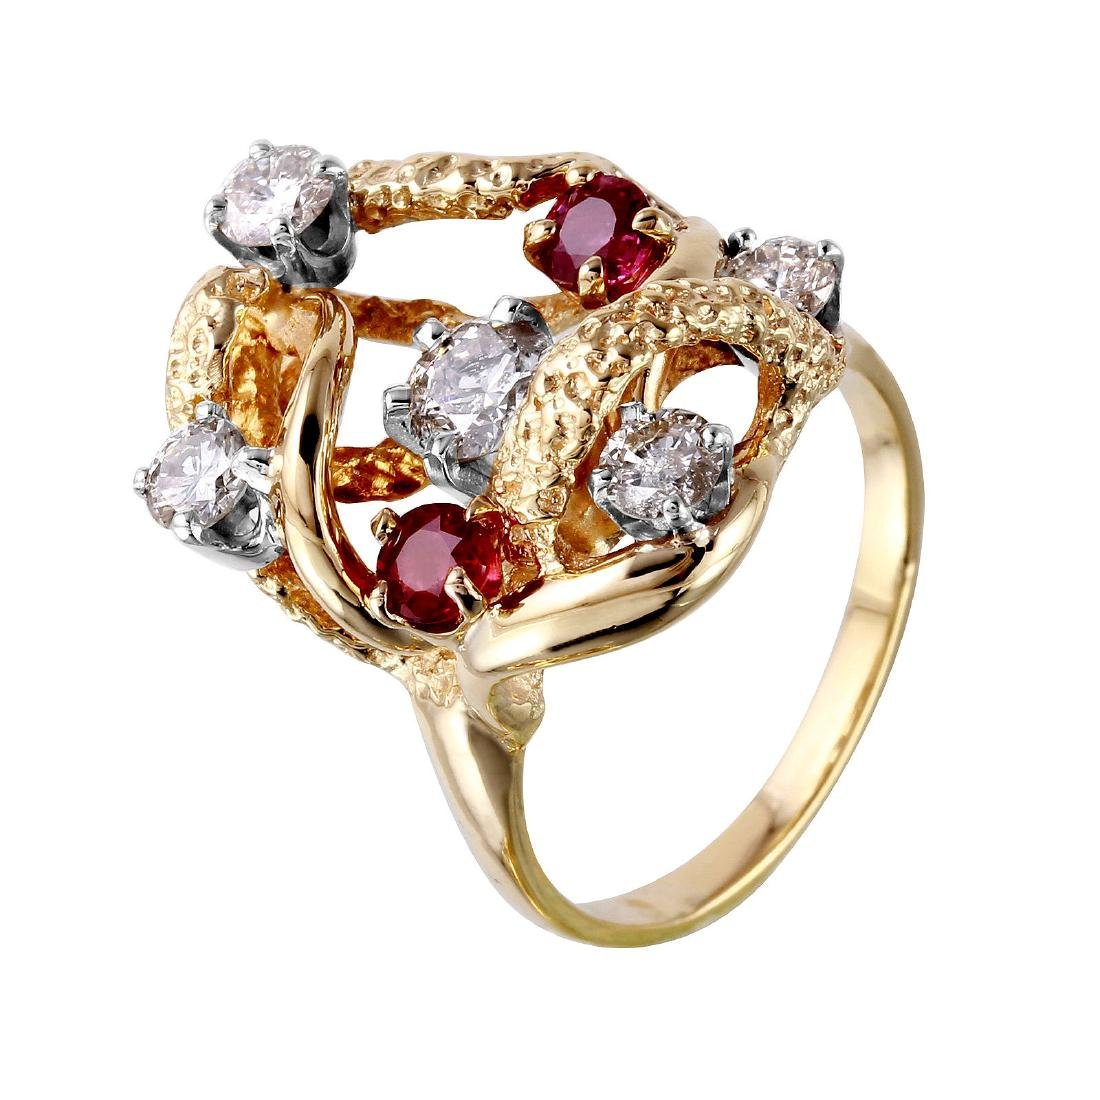 14KT Yellow Gold Diamond and Ruby Ring